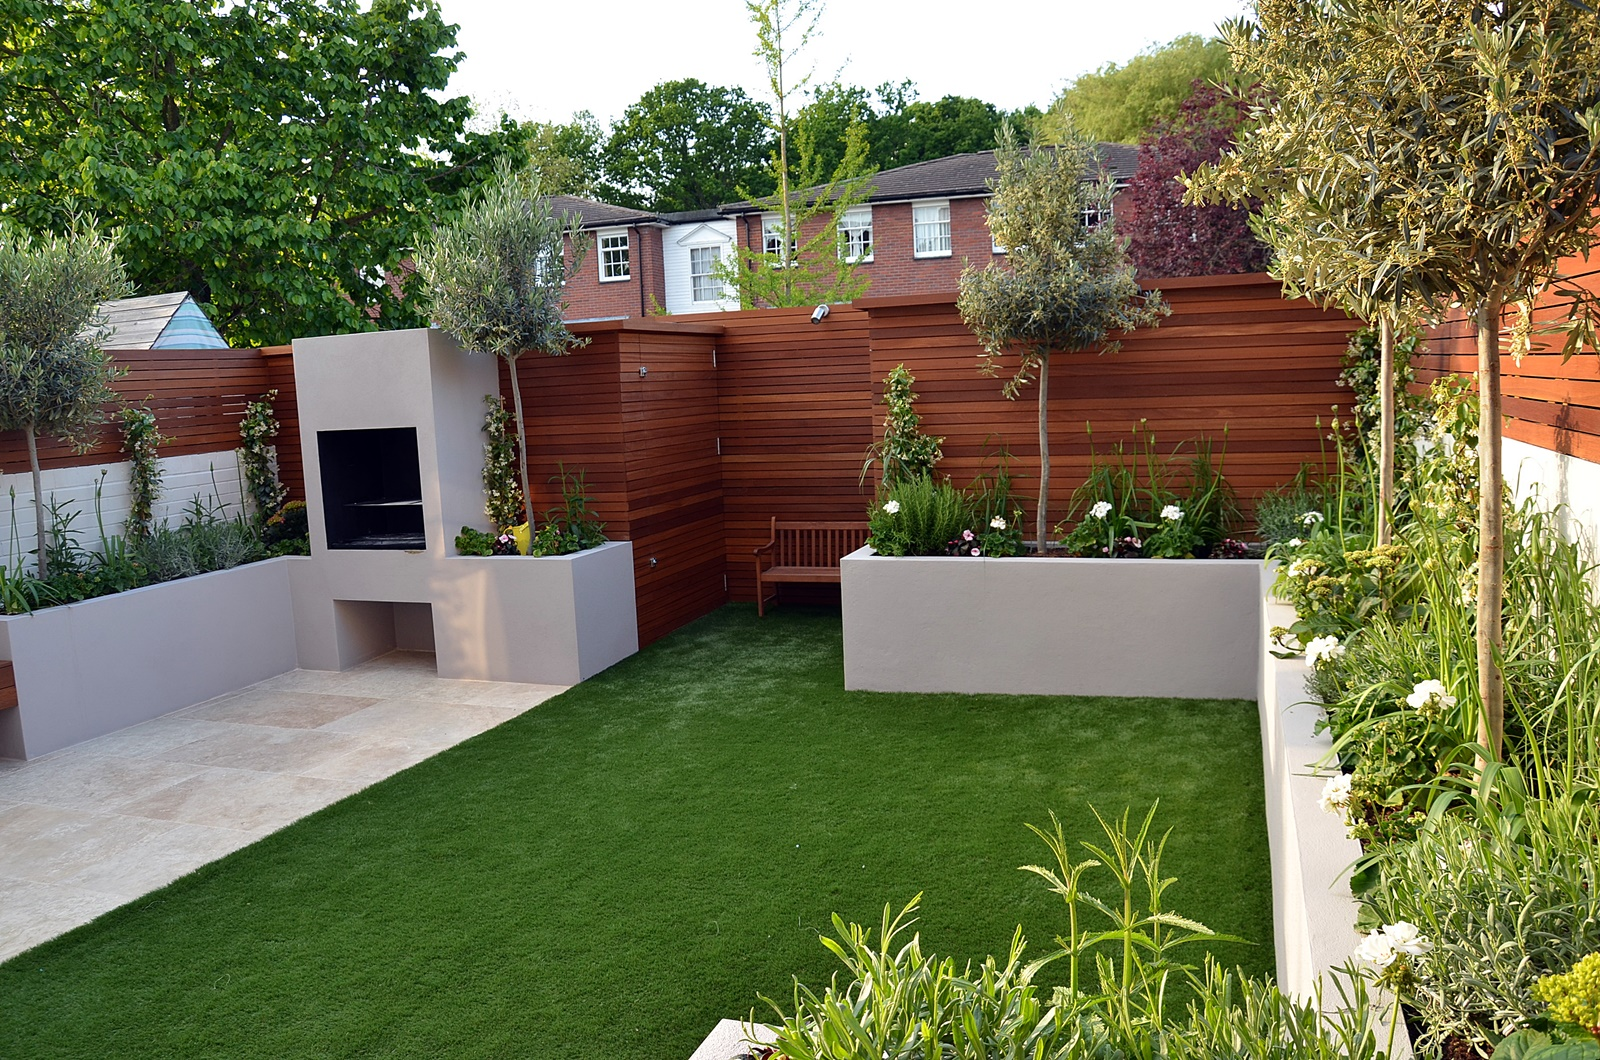 Modern garden design fulham chelsea clapham battersea balham dulwich london london garden blog - Garden ideas london ...